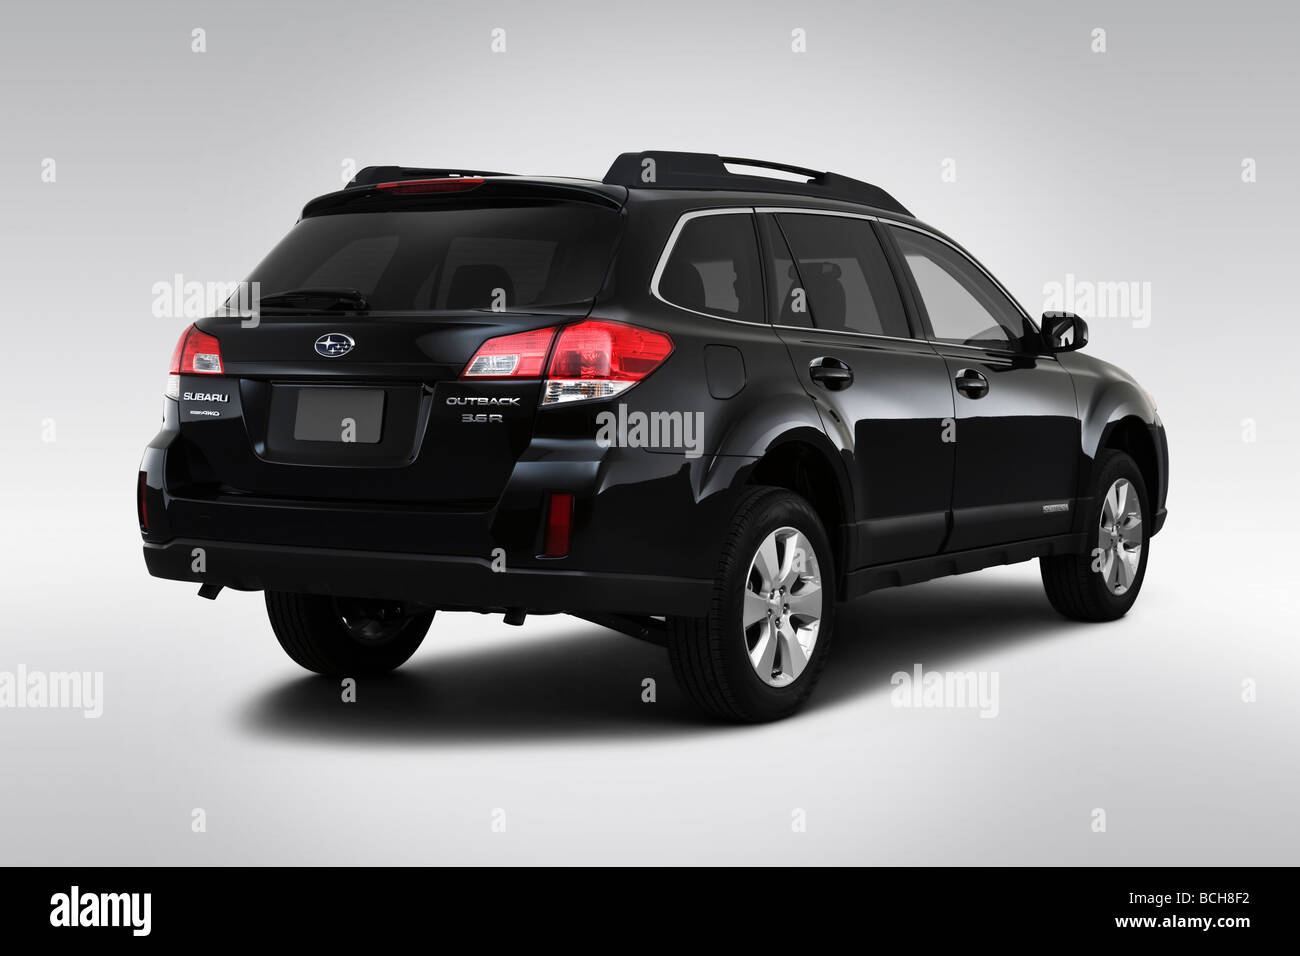 https www alamy com stock photo 2010 subaru outback 36 r in black rear angle view 24966118 html